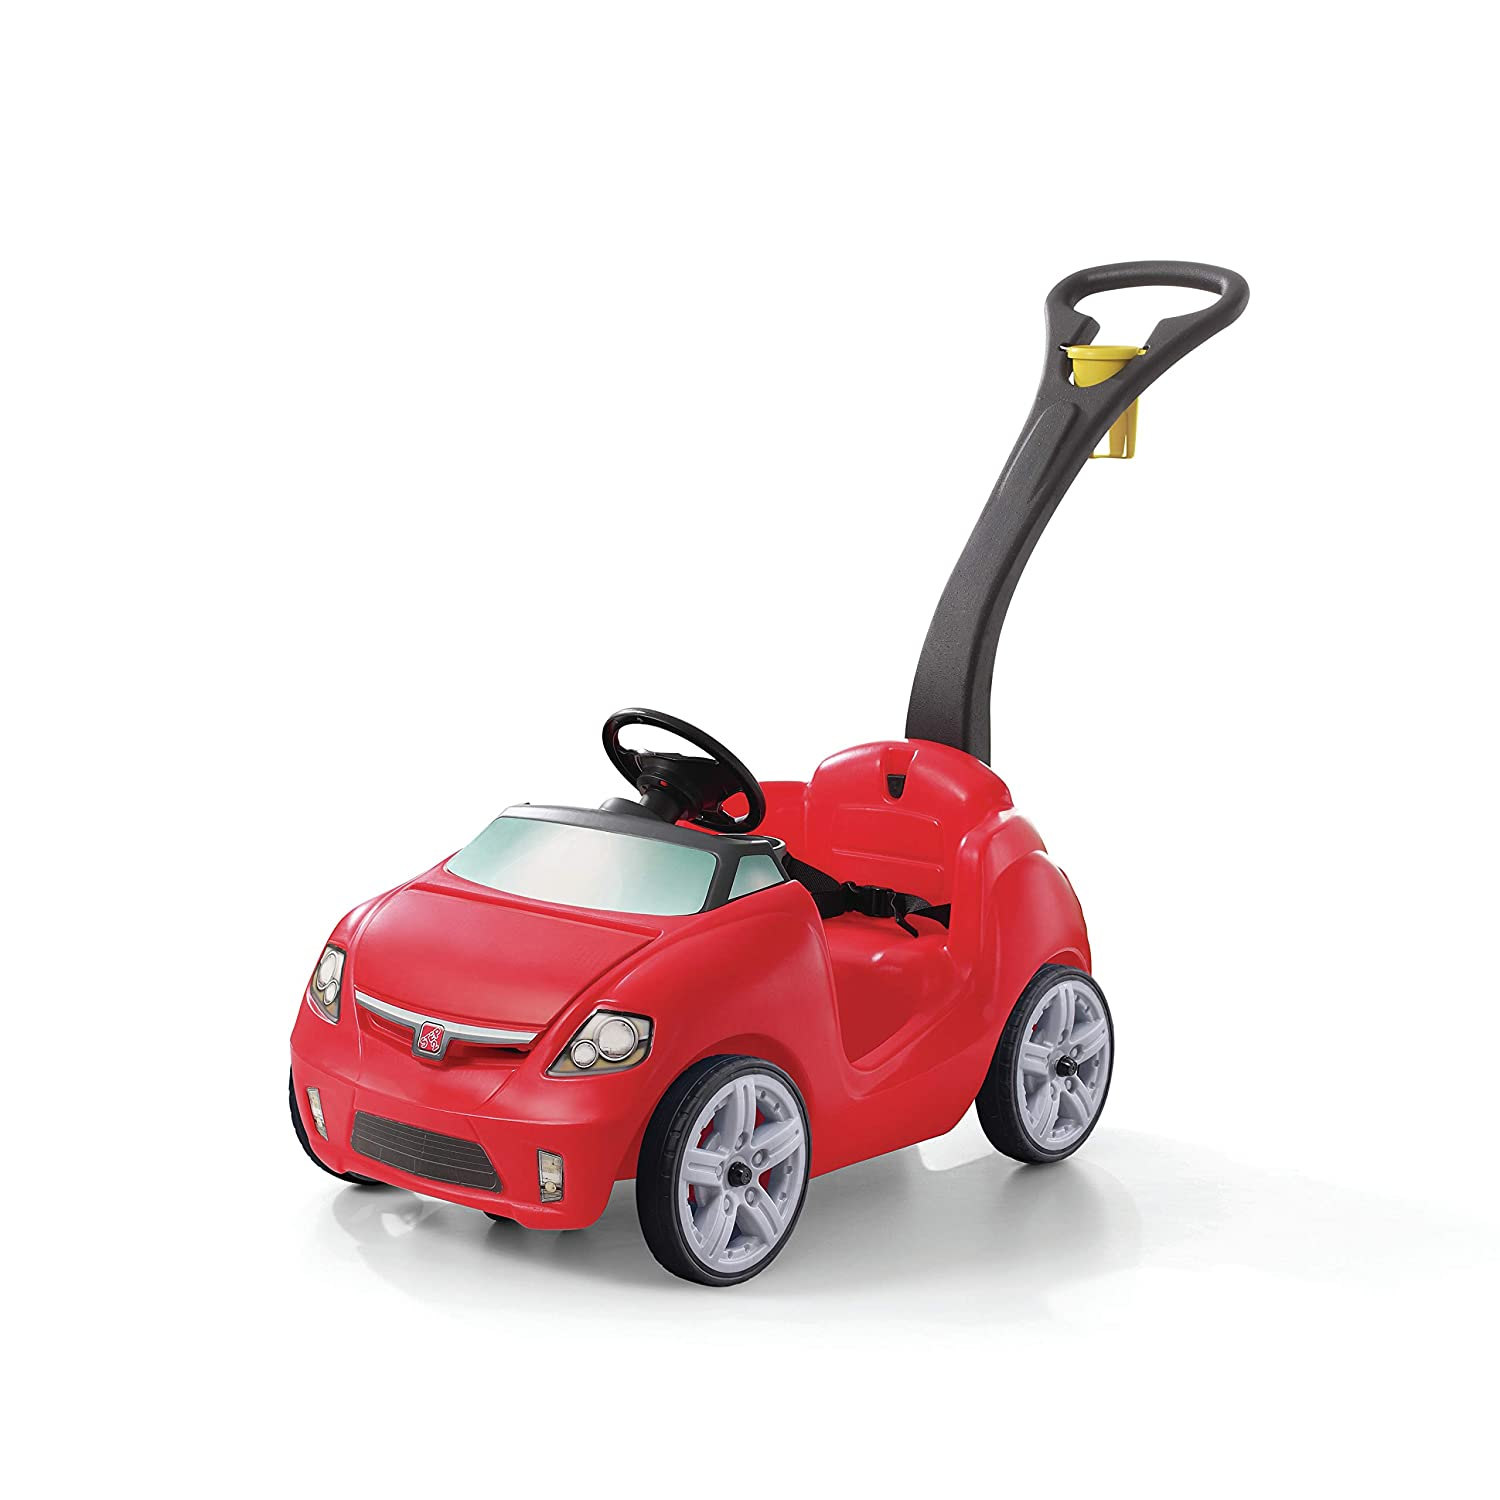 Top 9 Best Cars for 1 Year Olds You Can Consider 4